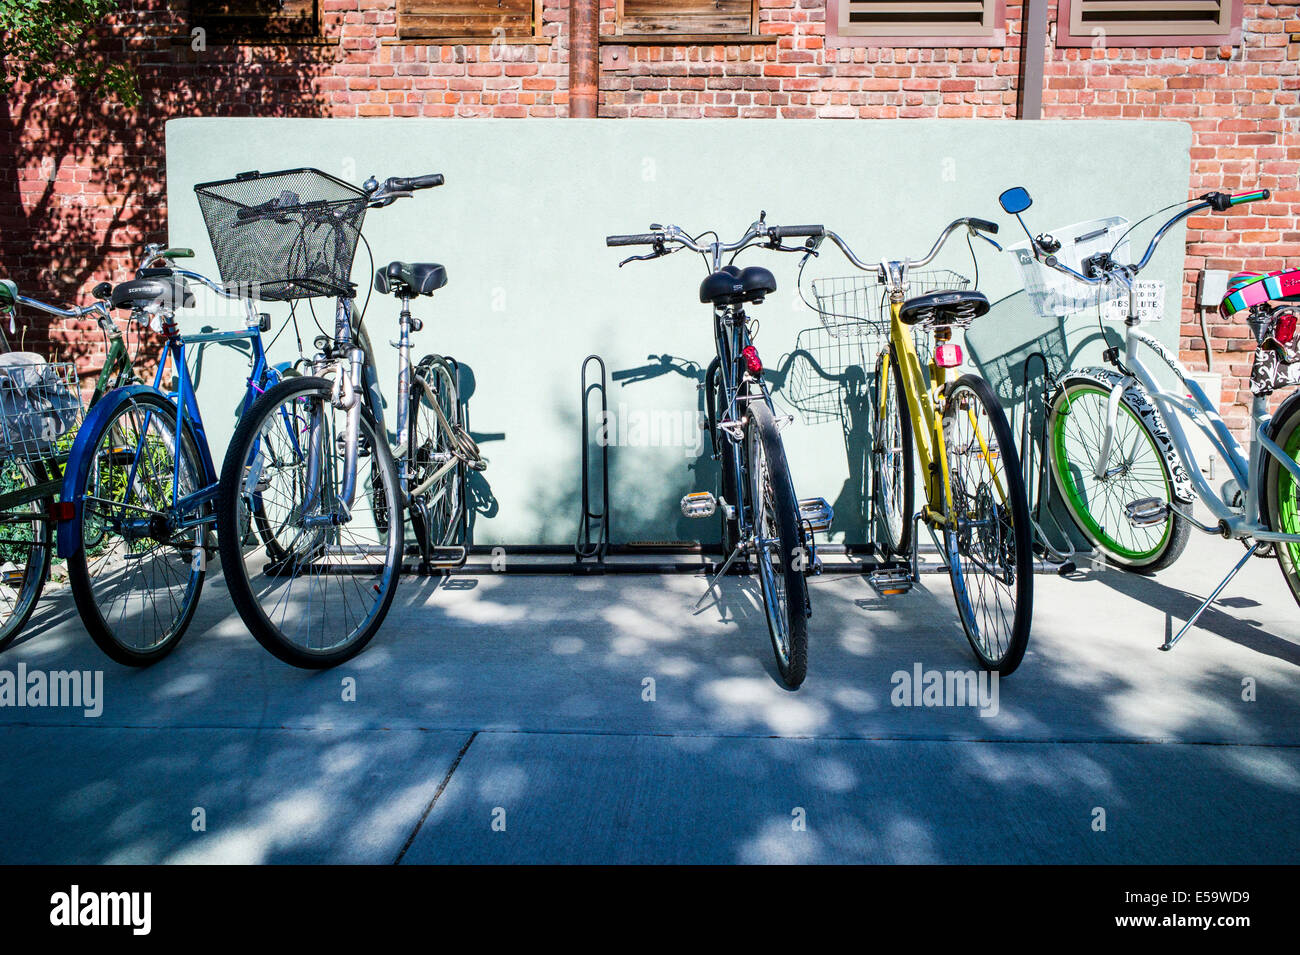 Bicycles lined up in rack on clear summer day - Stock Image